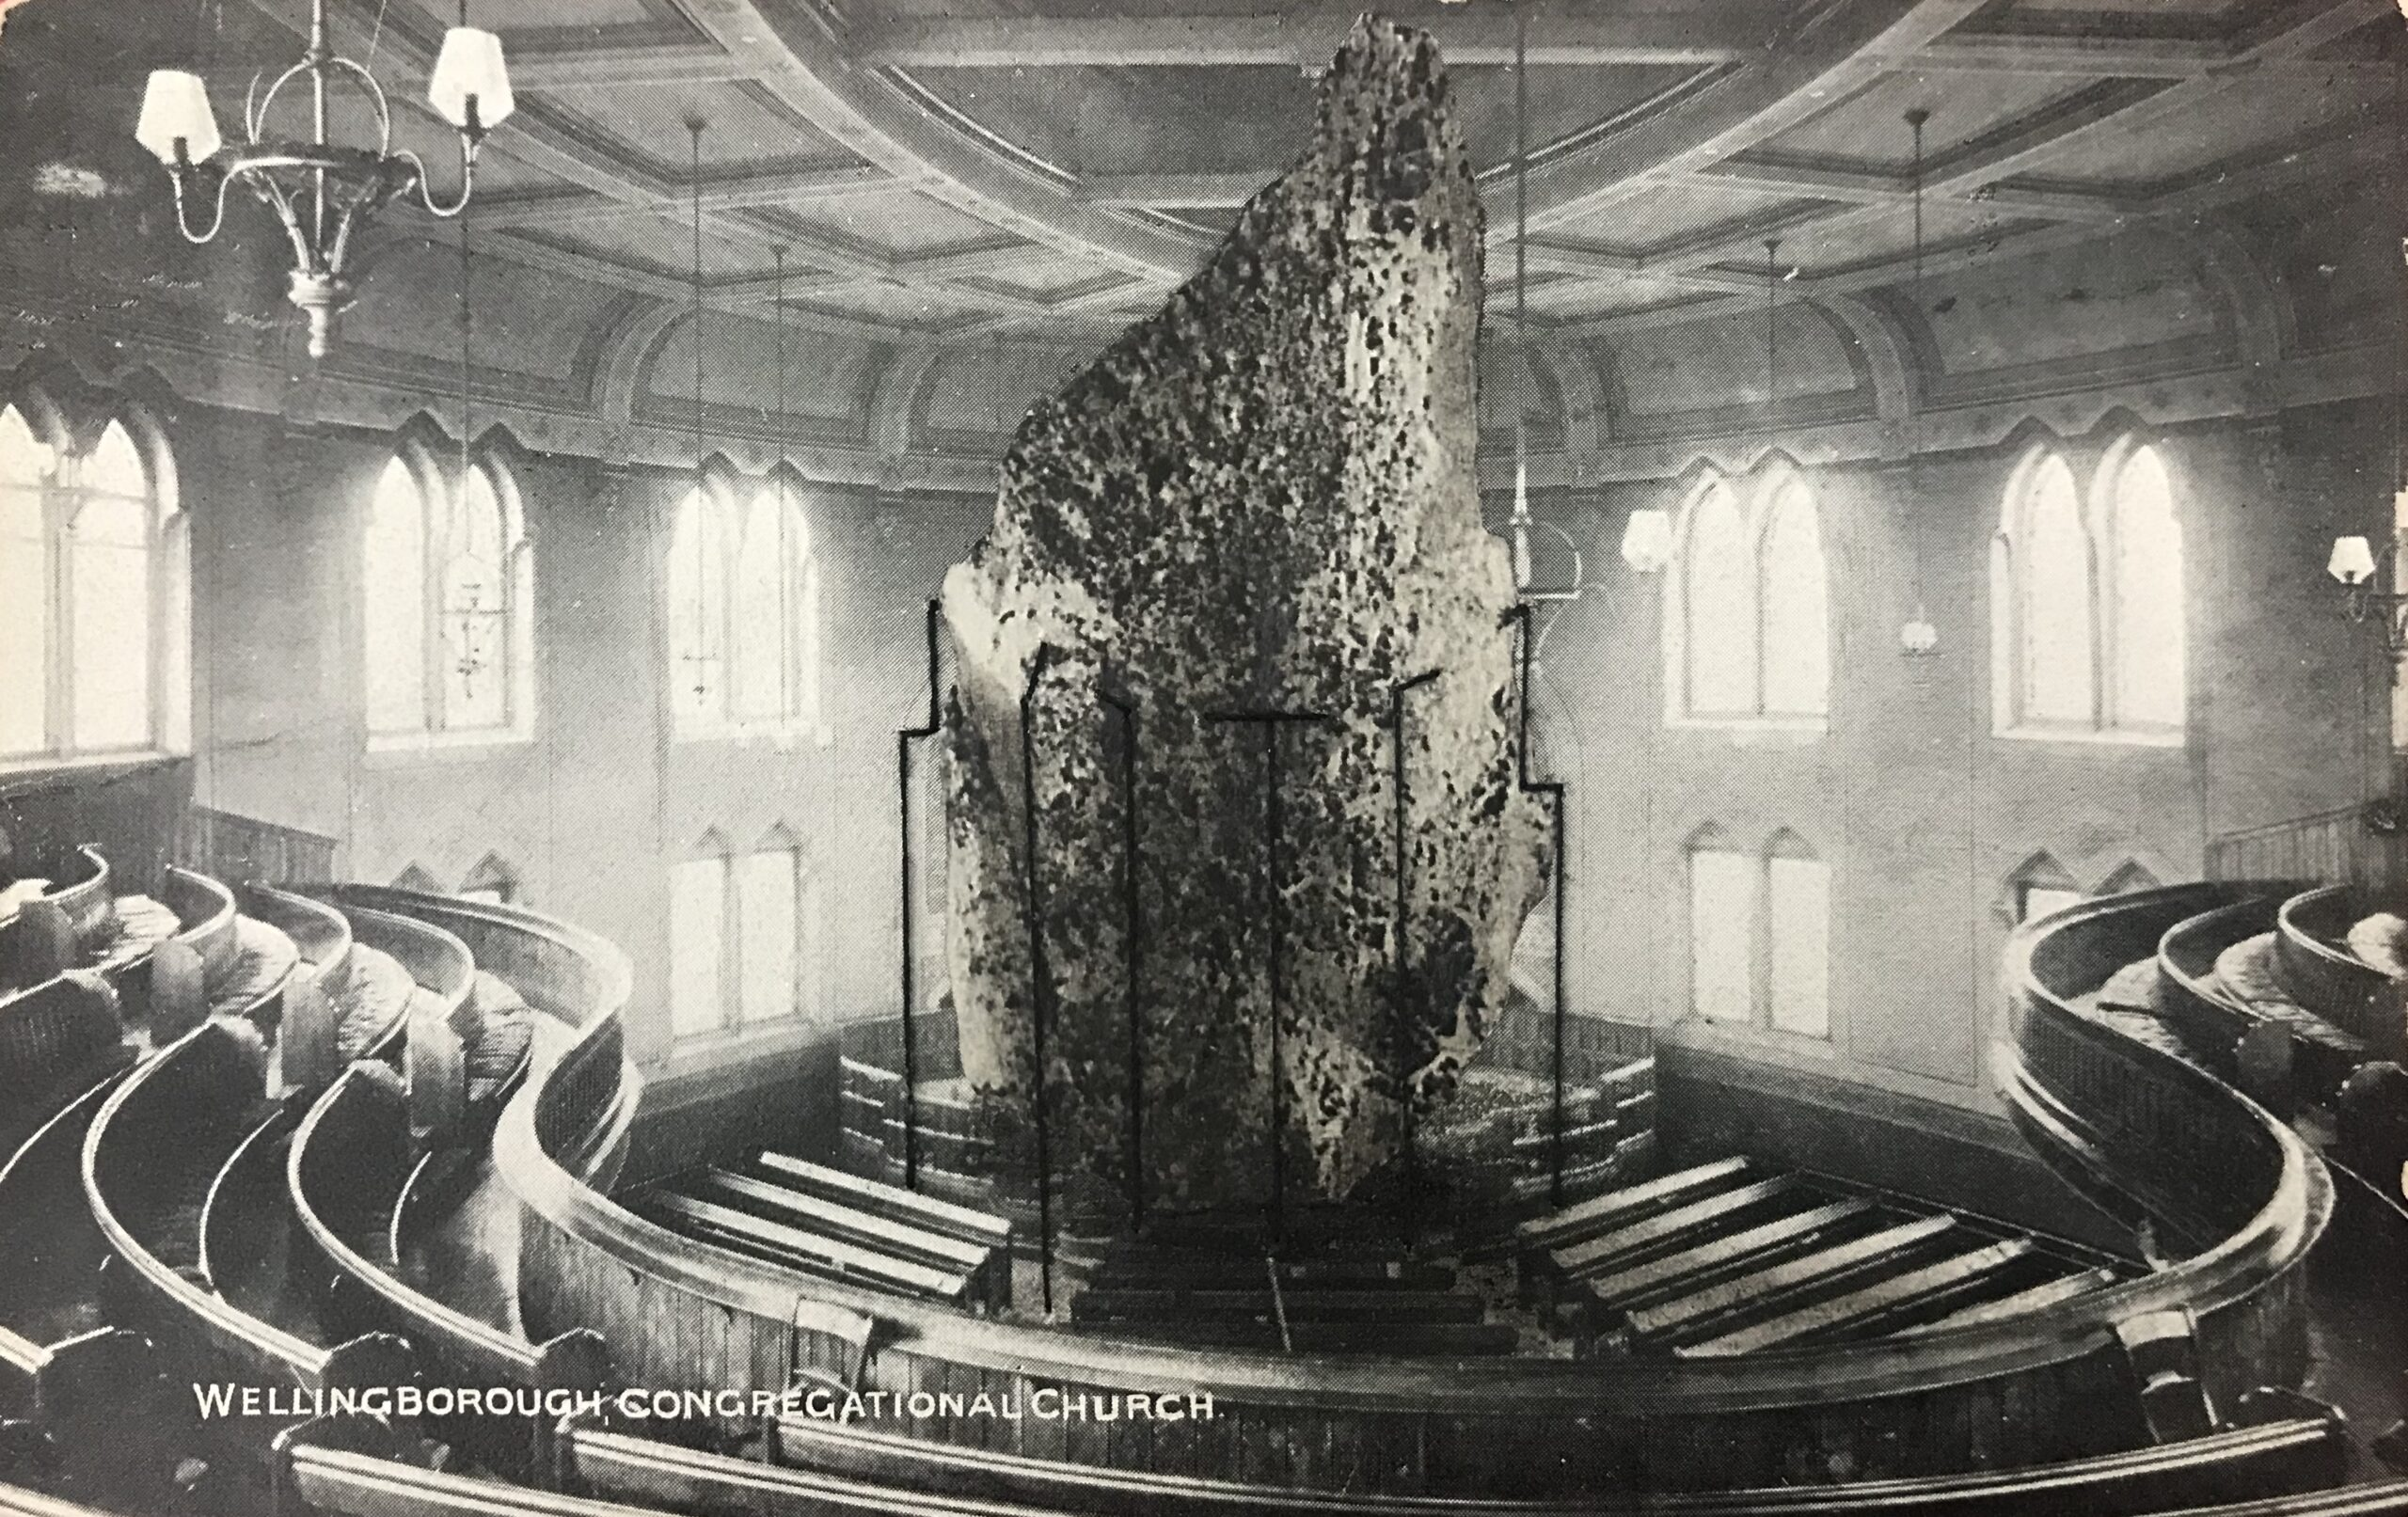 Black and white postcard of the inside of a large round building with shaped wooden seating surrounding a central dais. On the dais a huge rock reaches up to the ceiling, held in place with rods made of thread.